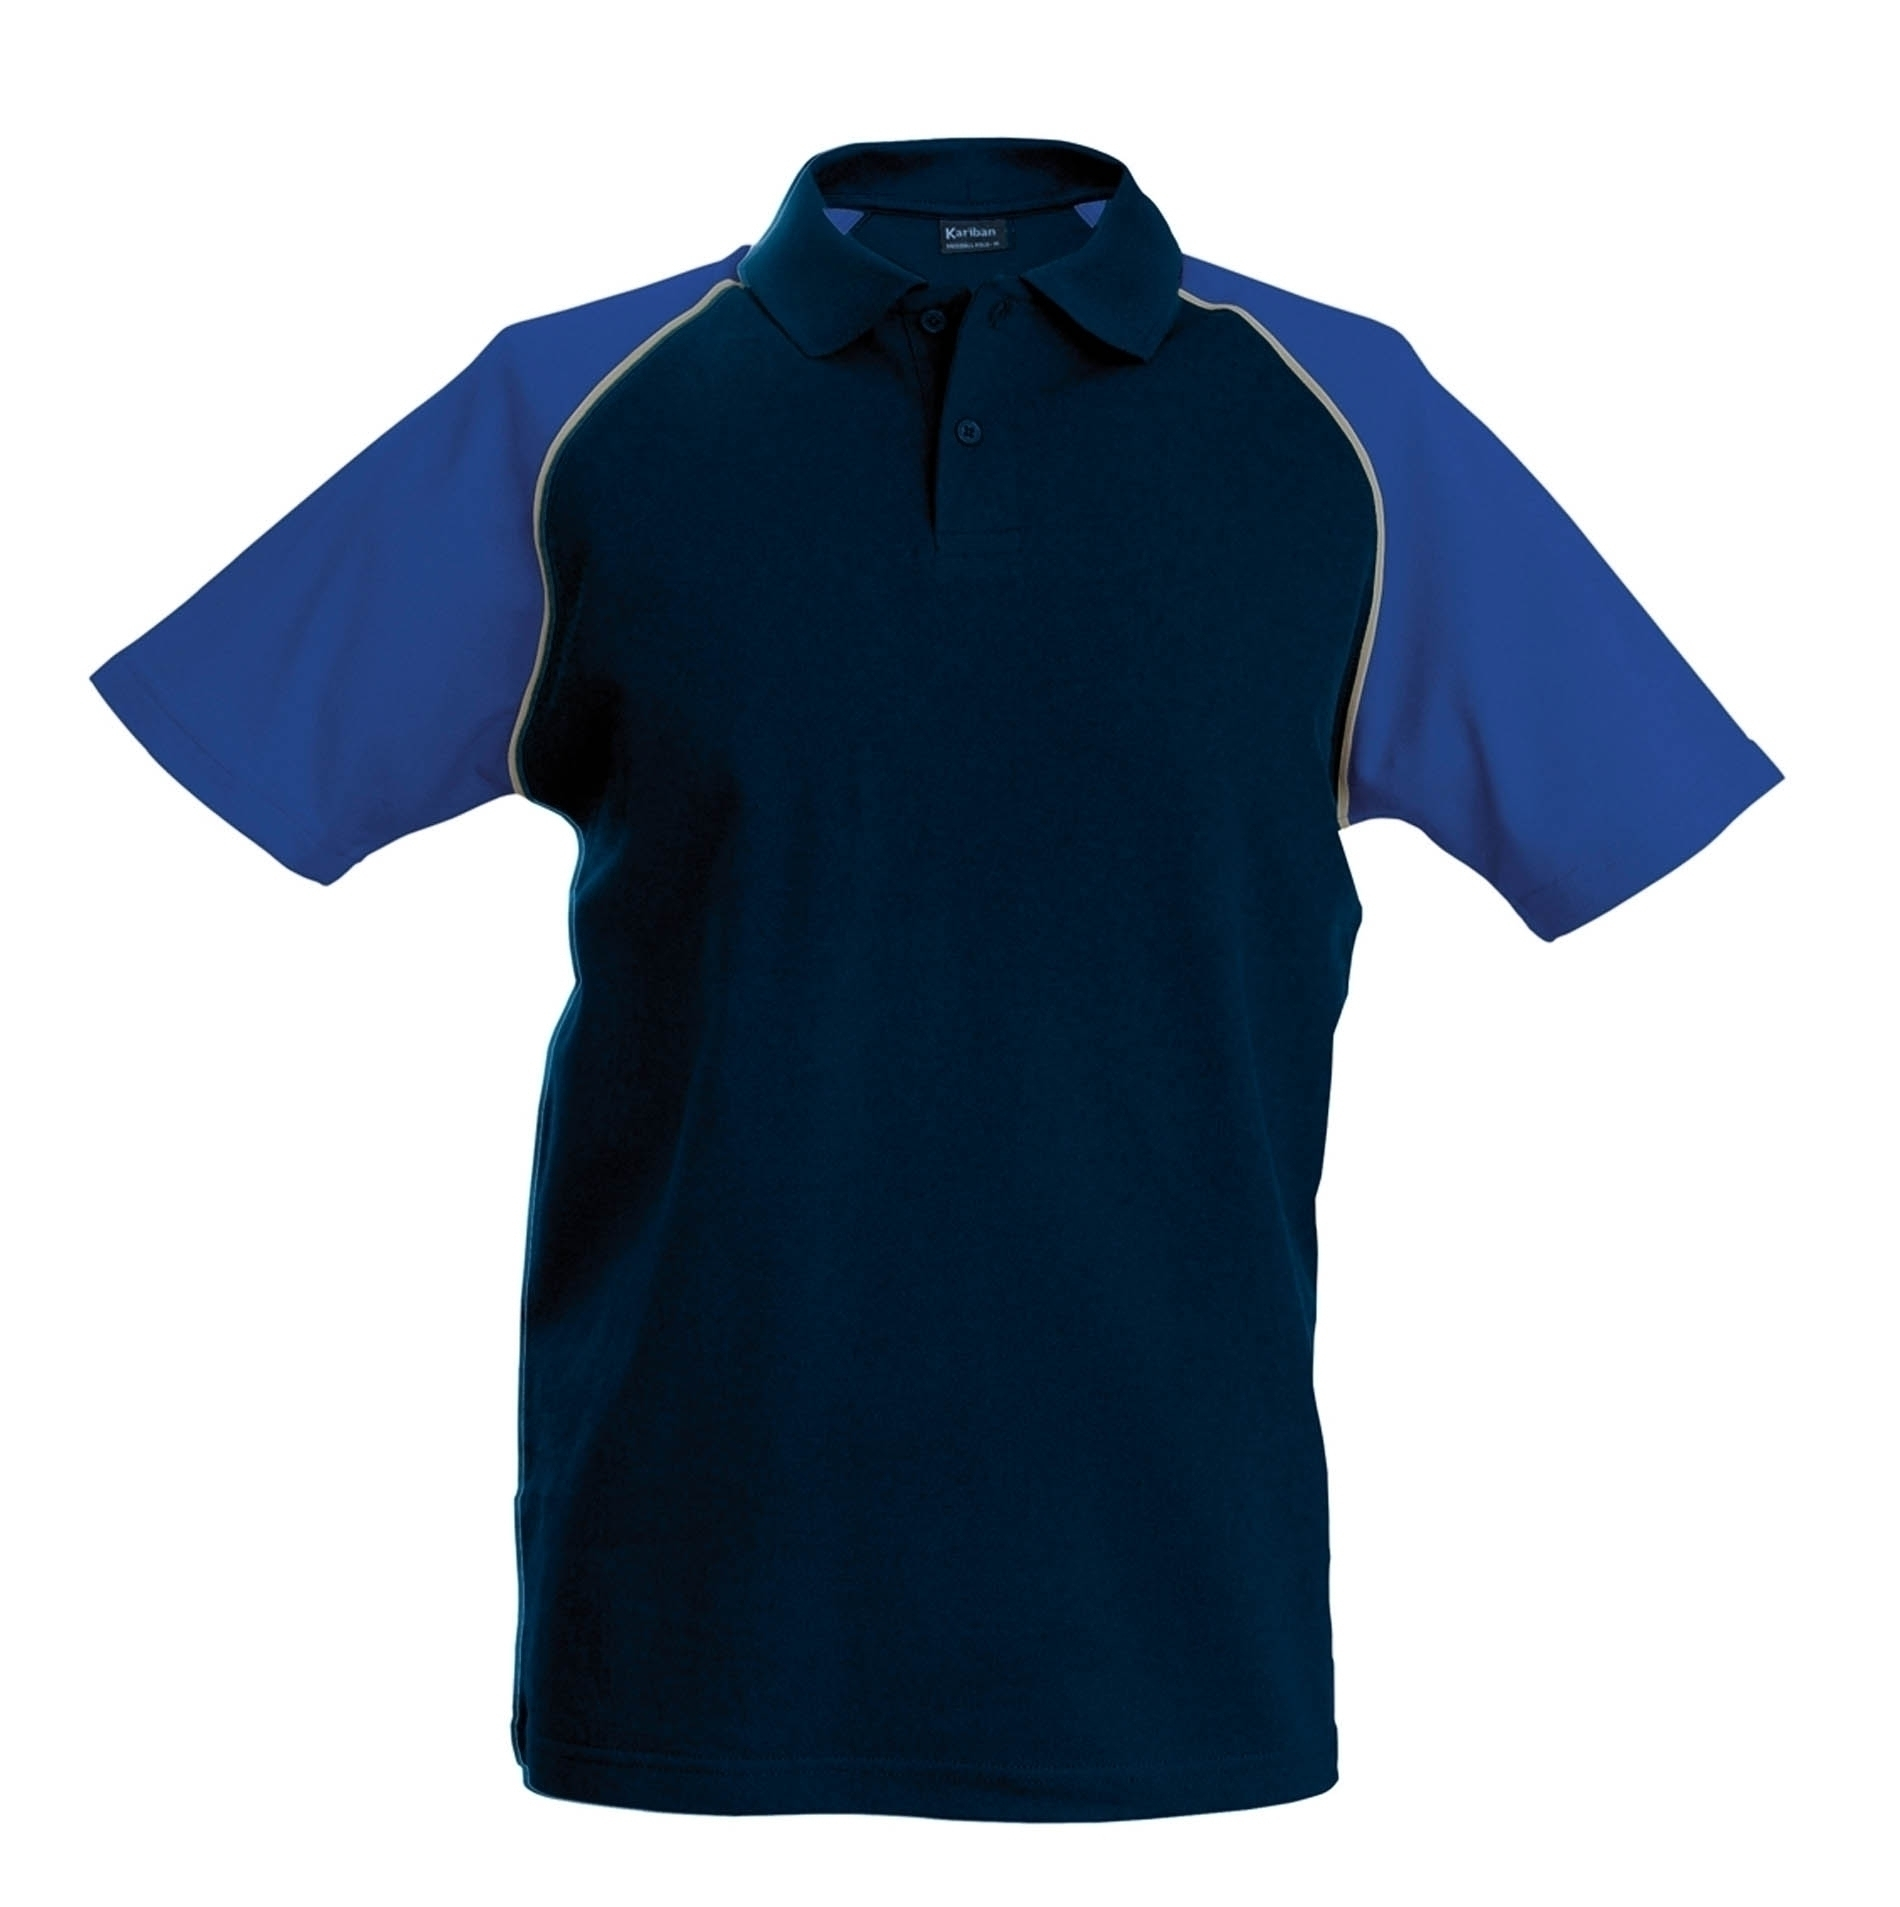 POLO BASE BALL MANCHES COURTES Navy / Royal Blue Bleu